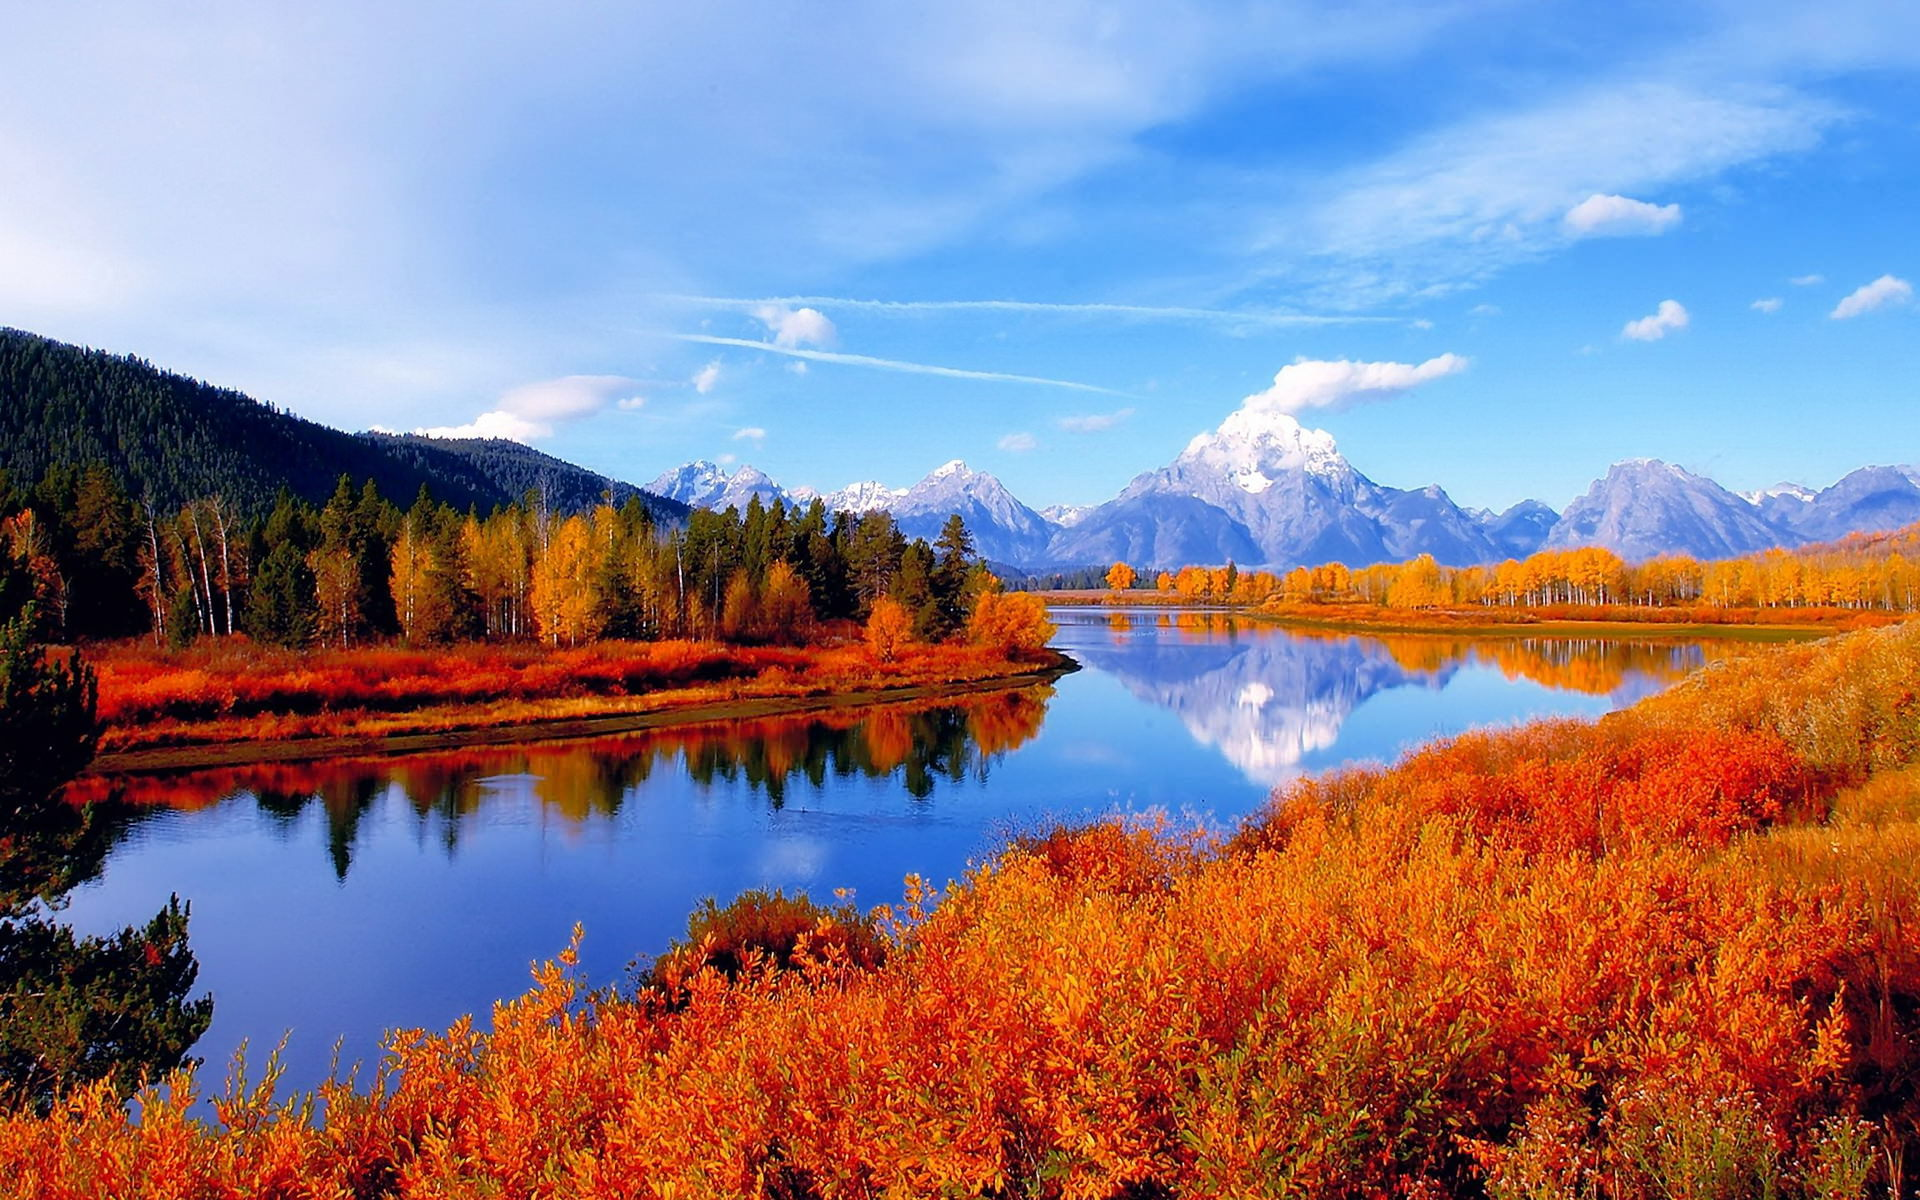 40 Autumn Scene Background Wallpaper for Desktop 1920x1200